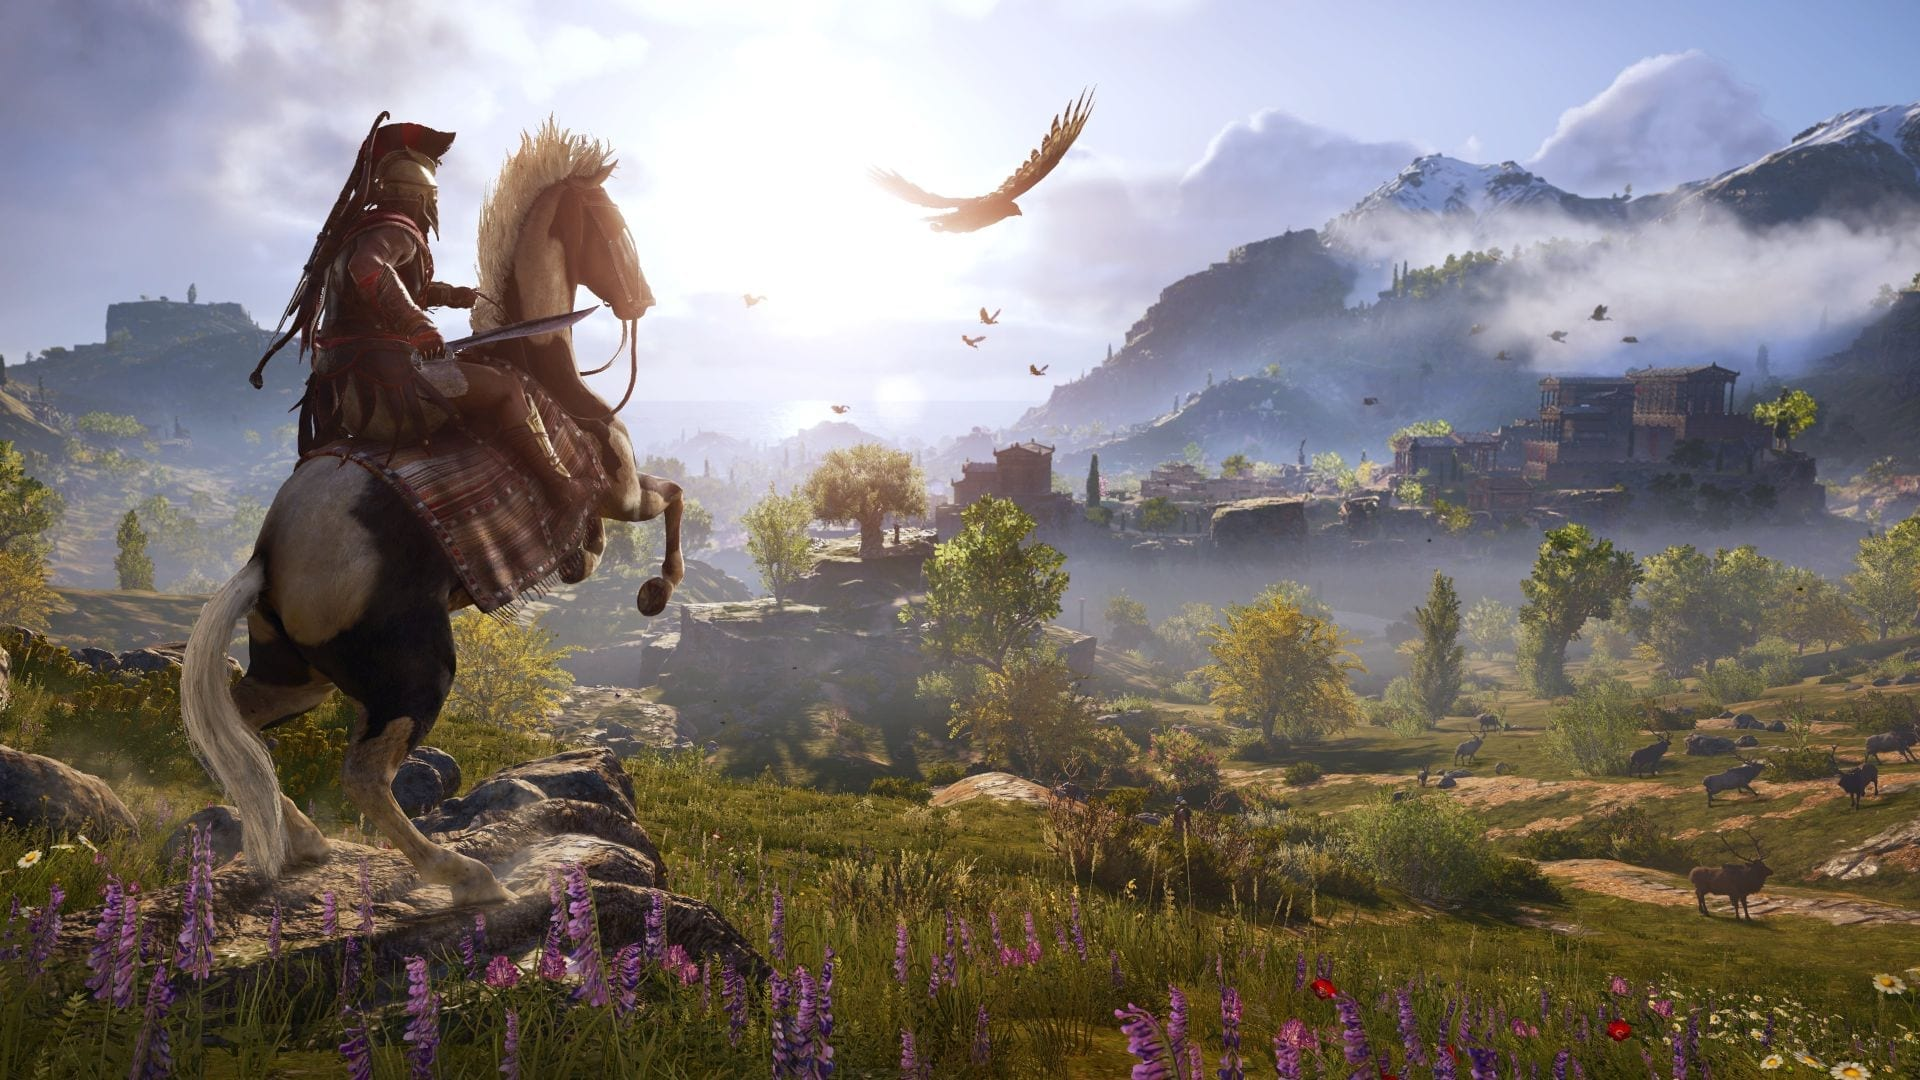 It's gonna be a looong ride in Assassin's Creed: Odyssey